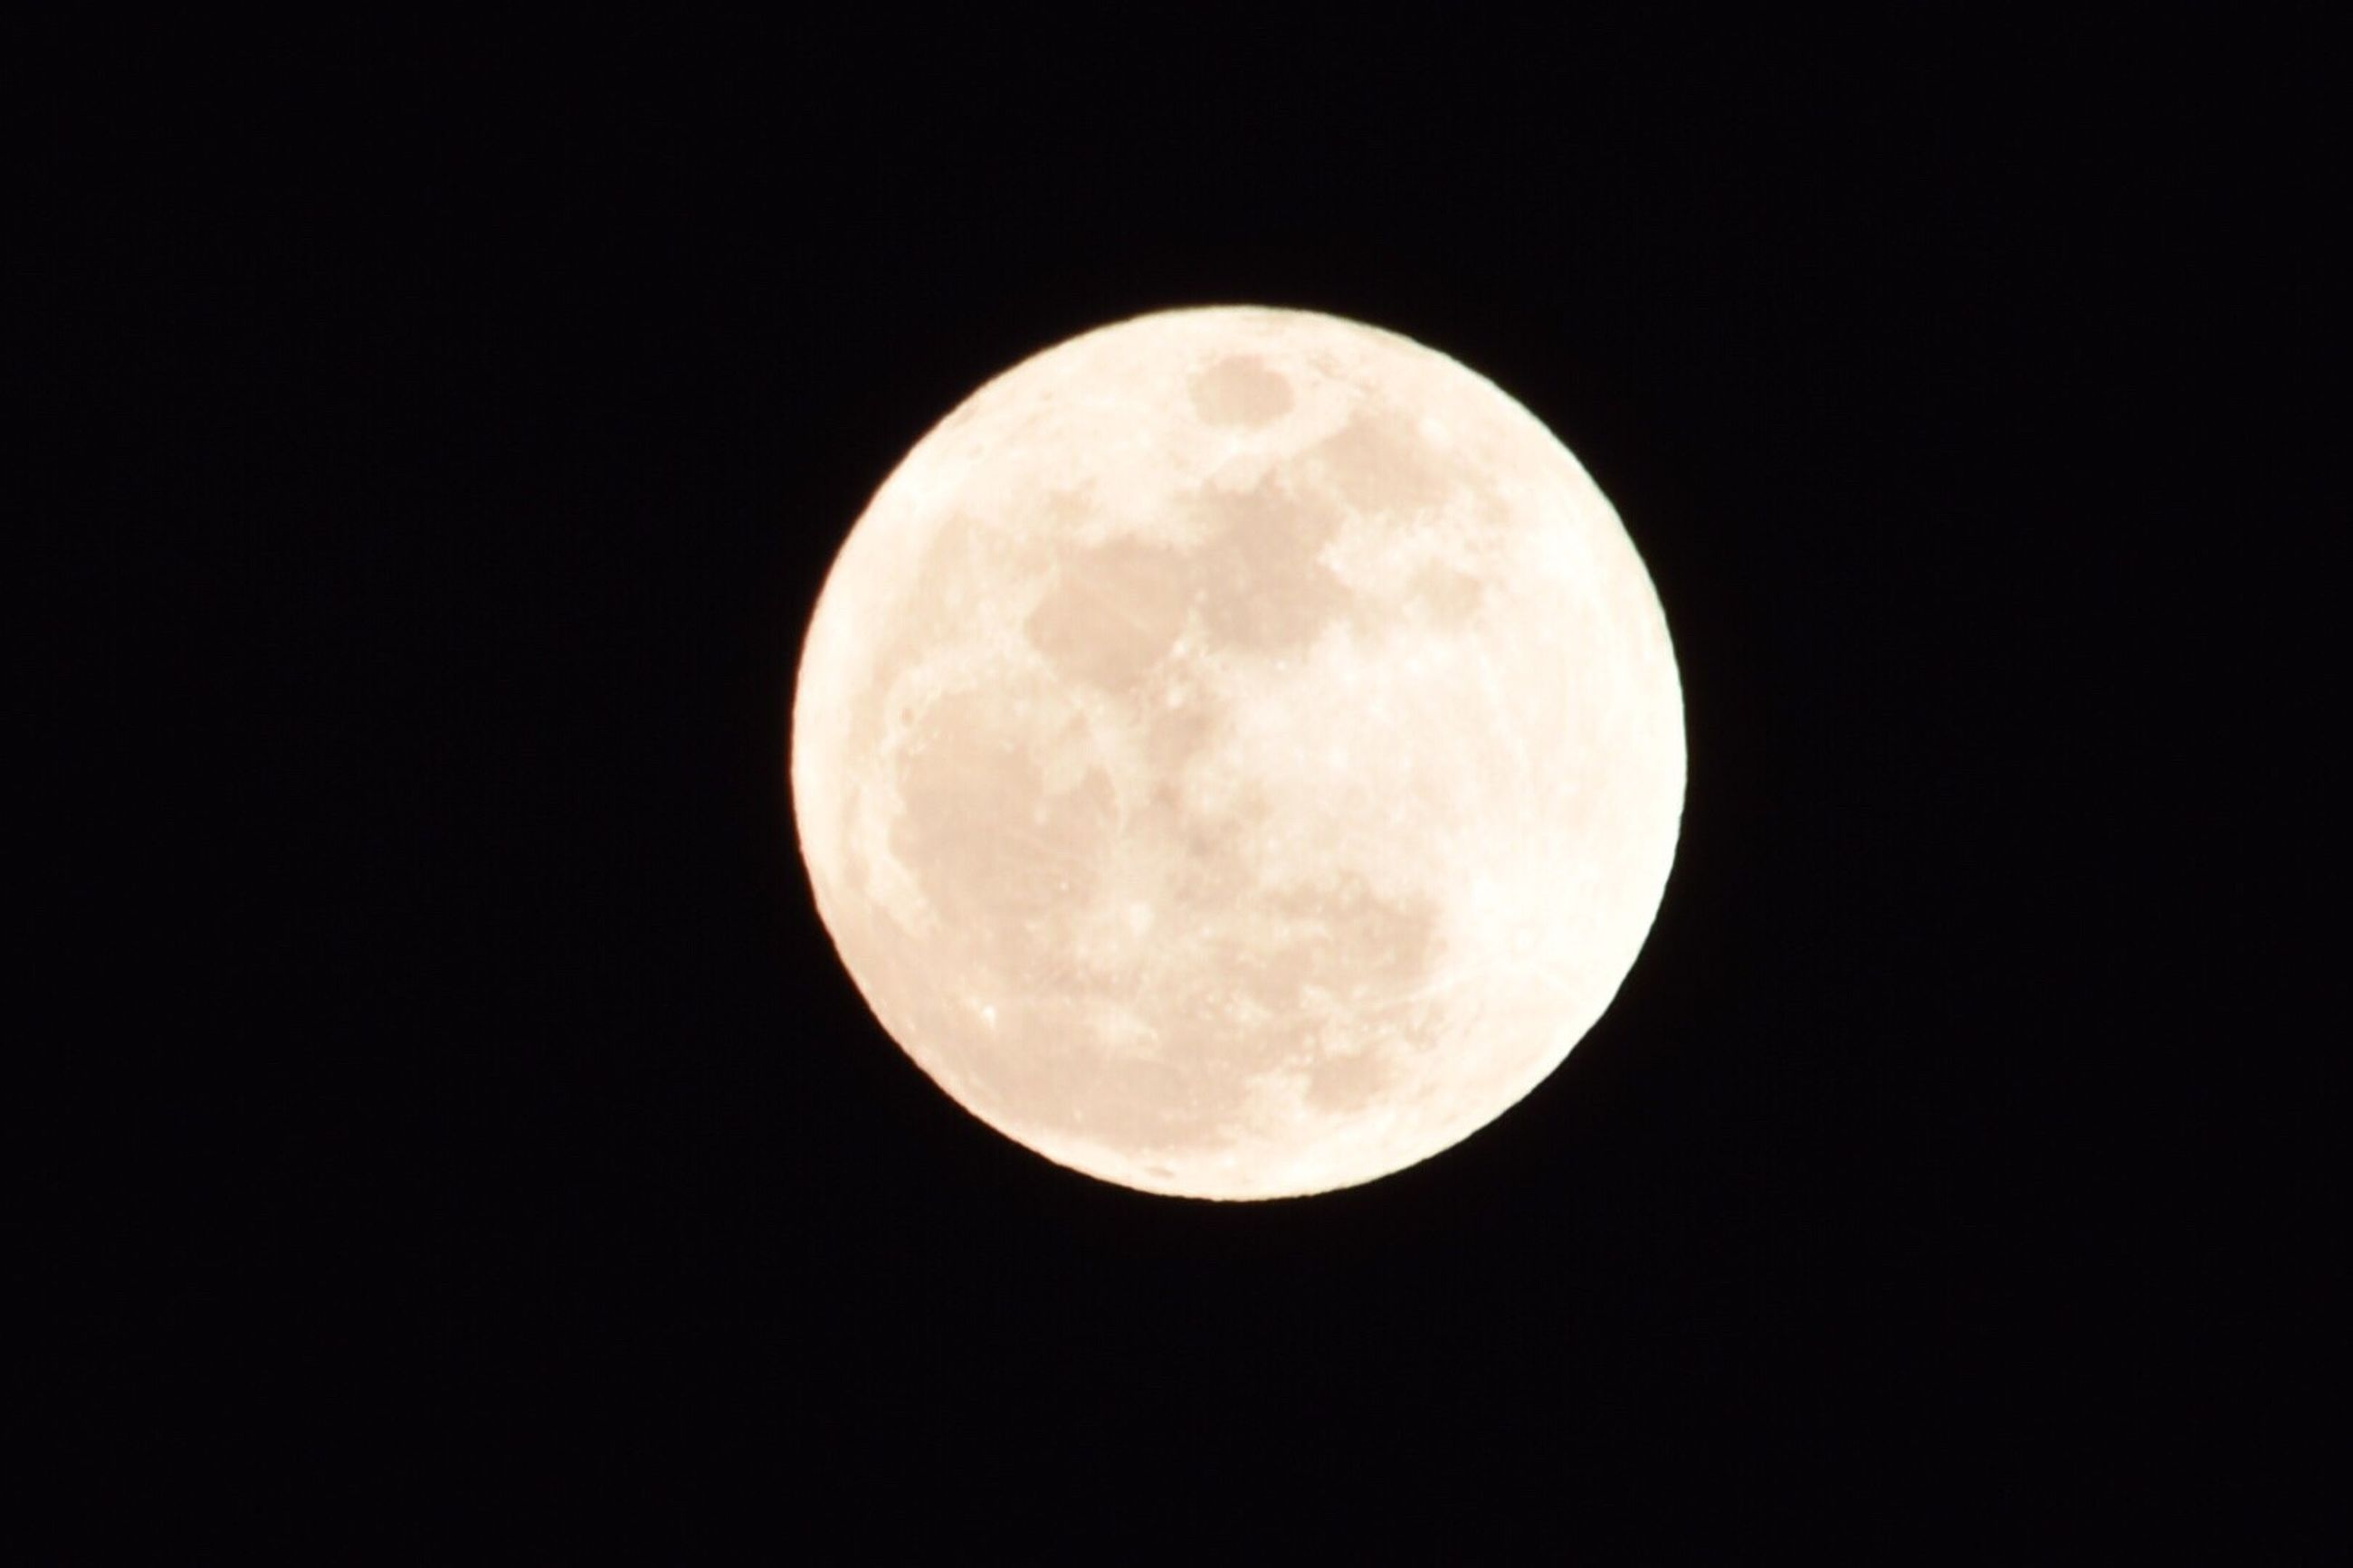 moon, night, copy space, full moon, astronomy, moon surface, nature, beauty in nature, no people, planetary moon, clear sky, low angle view, scenics, outdoors, black background, space